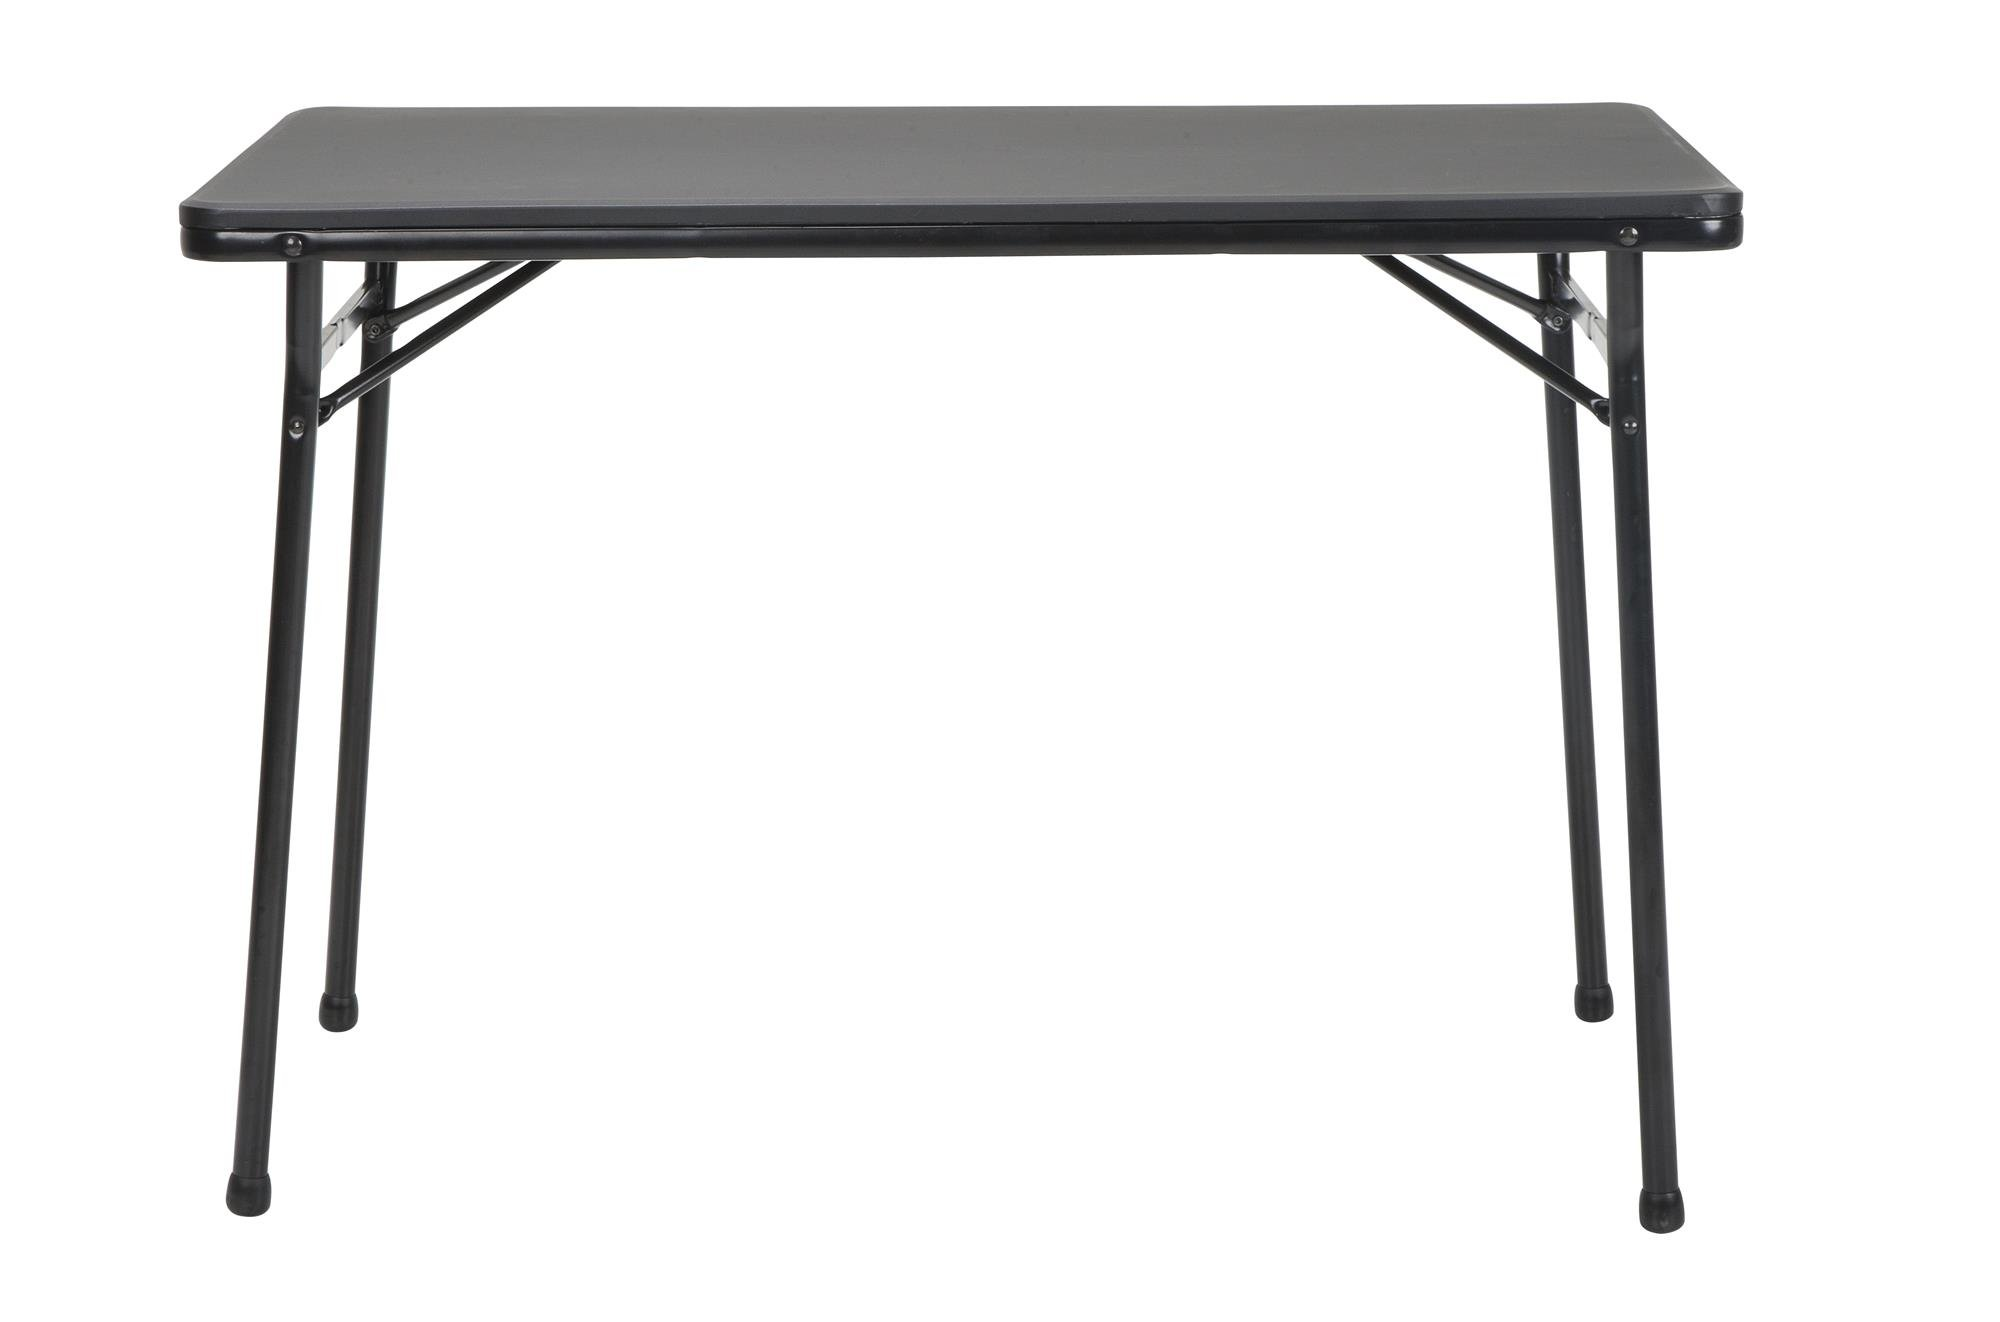 Cosco Products COSCO 3 Piece Indoor Outdoor Table and 2 Bench Tailgate Set, Black by Cosco Products (Image #8)